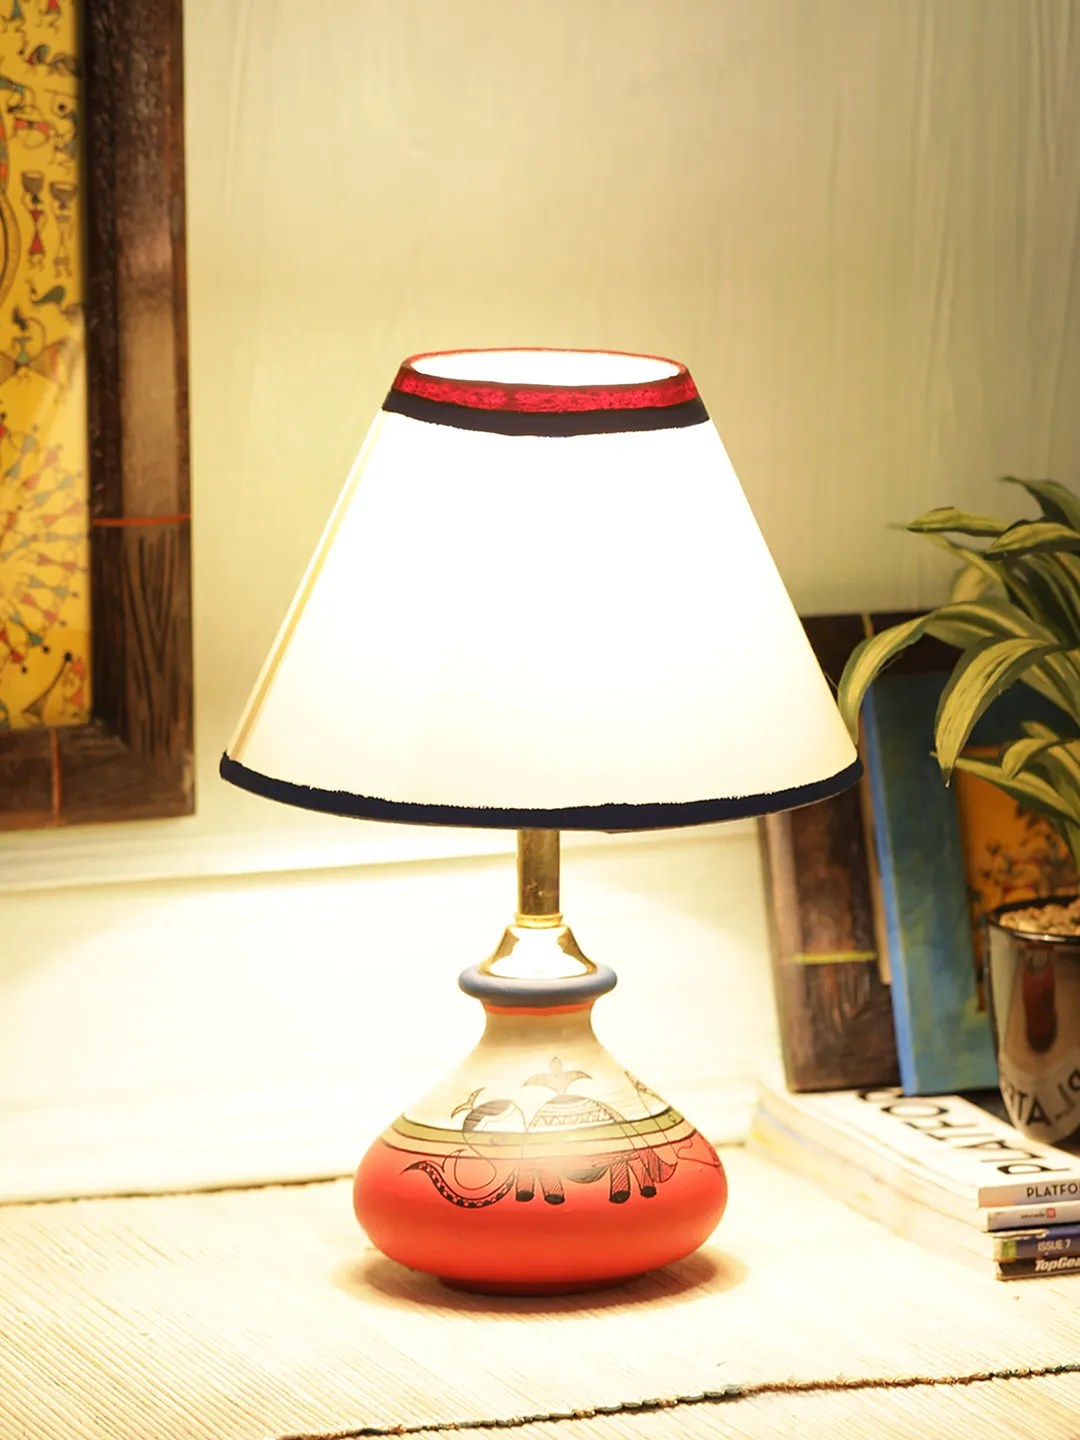 Bed Table Lamps Carrot Red Madhubani Terracotta Bed Side Table Lamp With Cream Shade